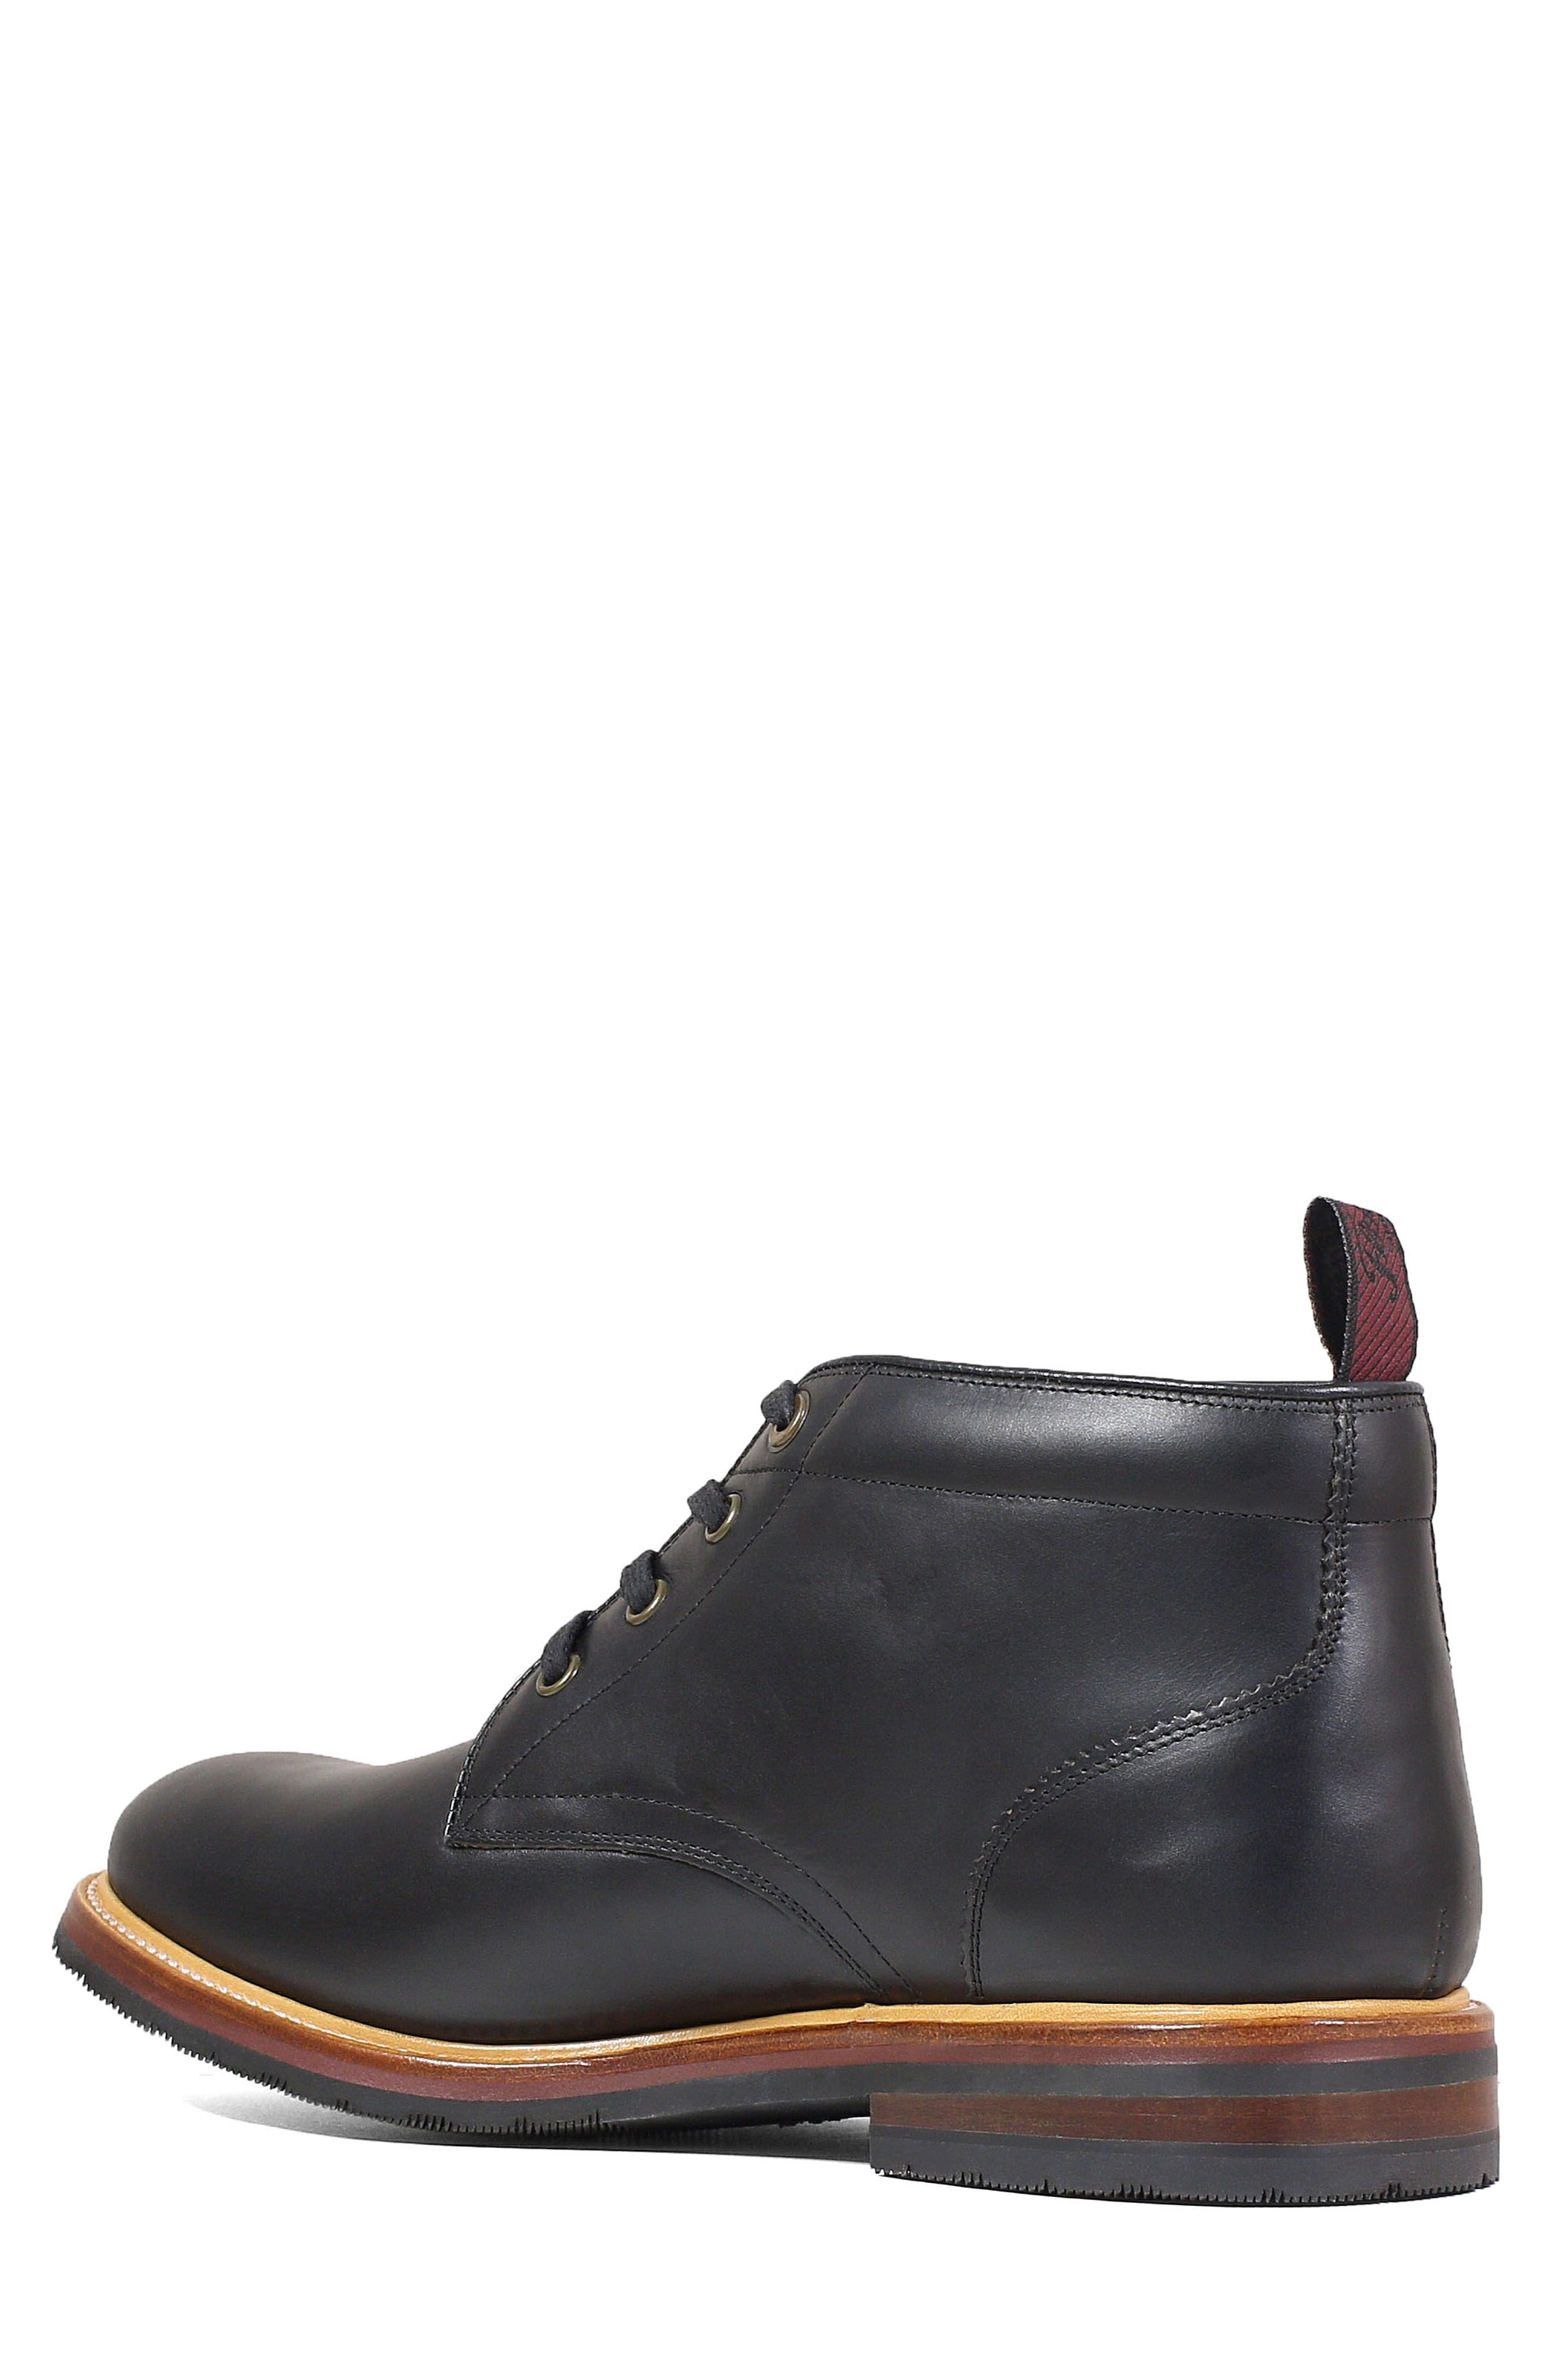 Foundry Leather Boot,                             Alternate thumbnail 2, color,                             BLACK LEATHER